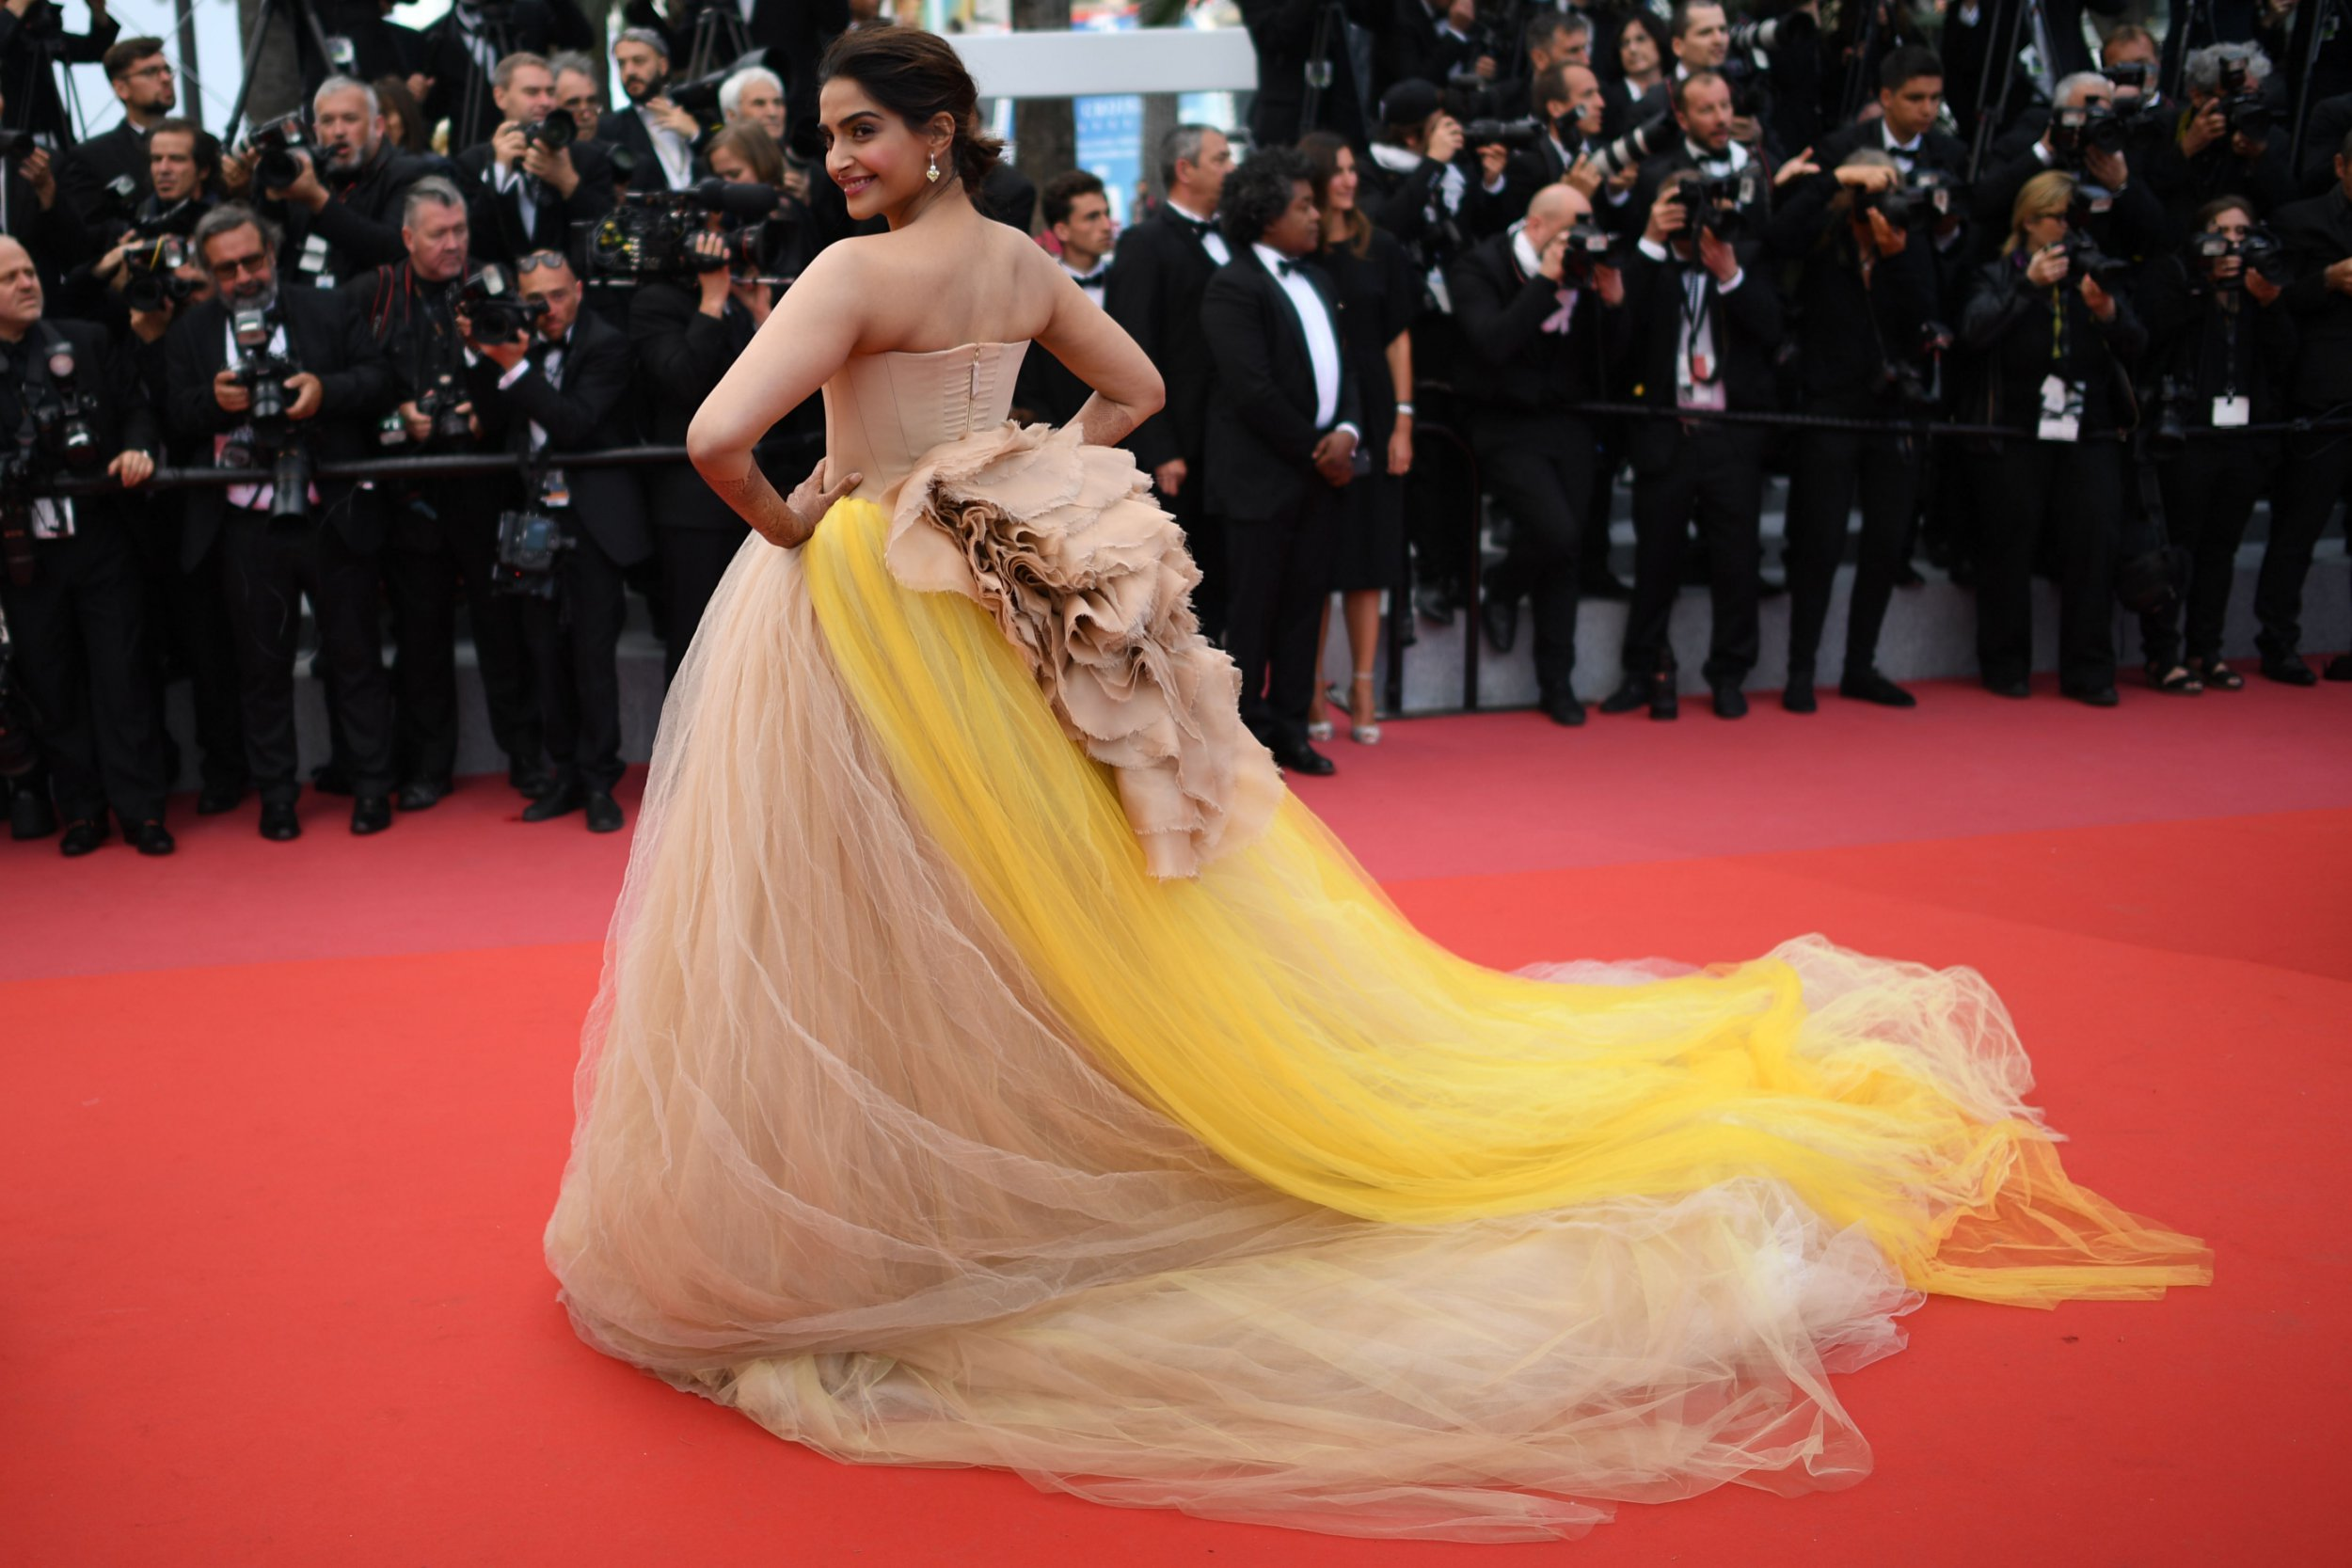 """Indian actress Sonam Kapoor poses as she arrives on May 15, 2018 for the screening of the film """"Solo : A Star Wars Story"""" at the 71st edition of the Cannes Film Festival in Cannes, southern France. / AFP PHOTO / Loic VENANCELOIC VENANCE/AFP/Getty Images"""